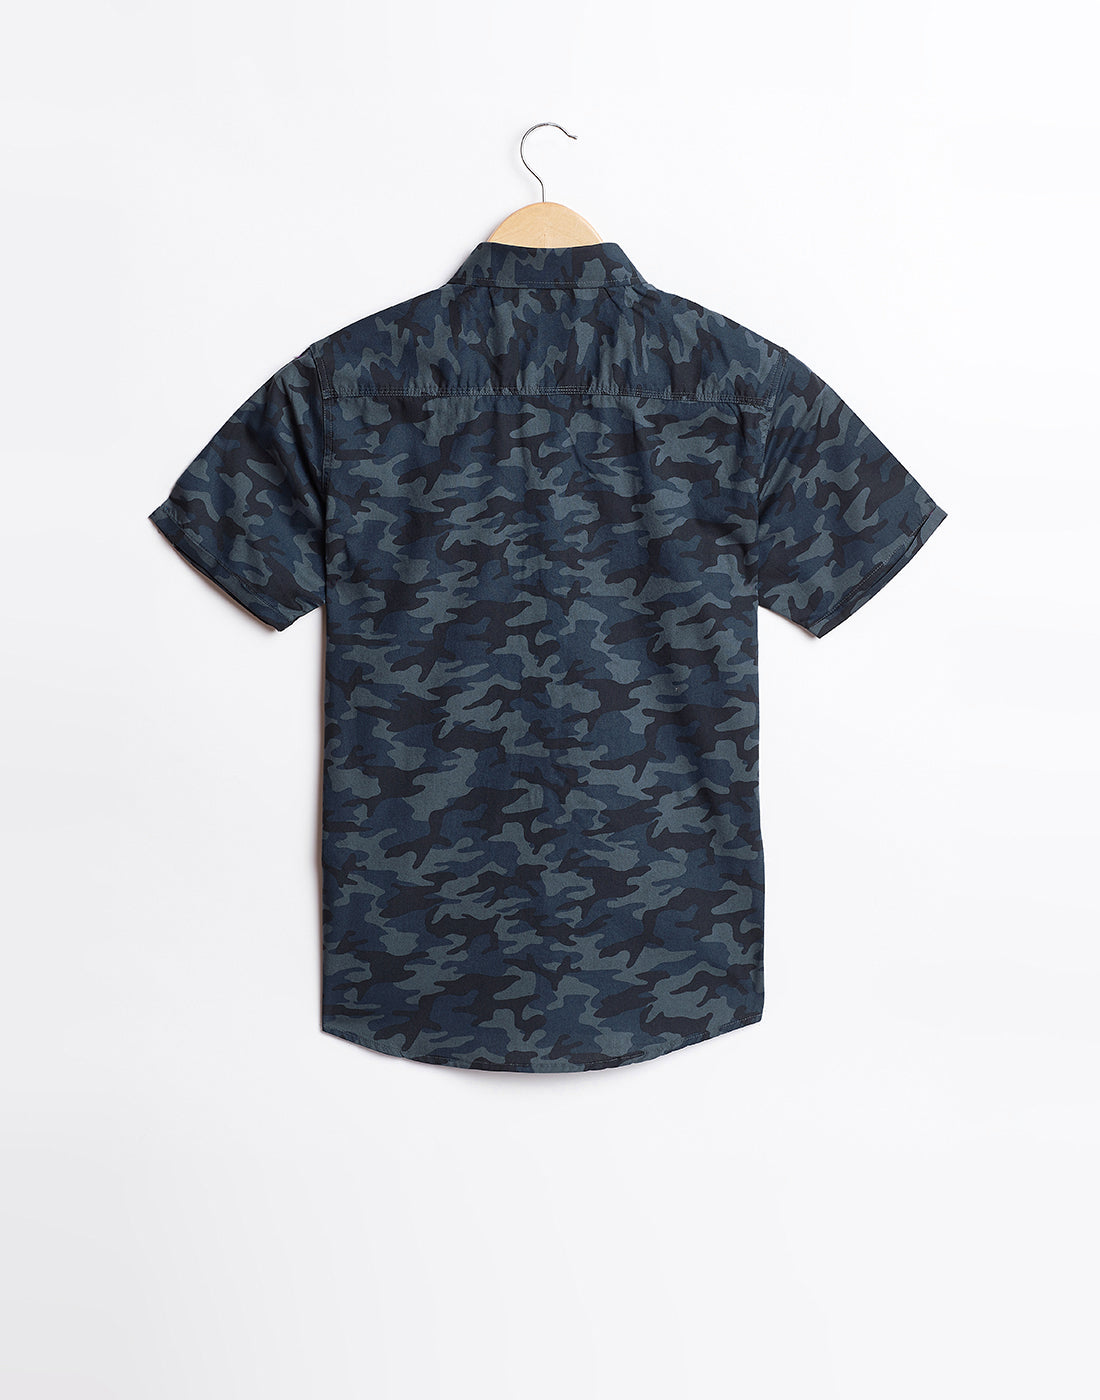 Octave Boys Charcoal Black Printed Shirt